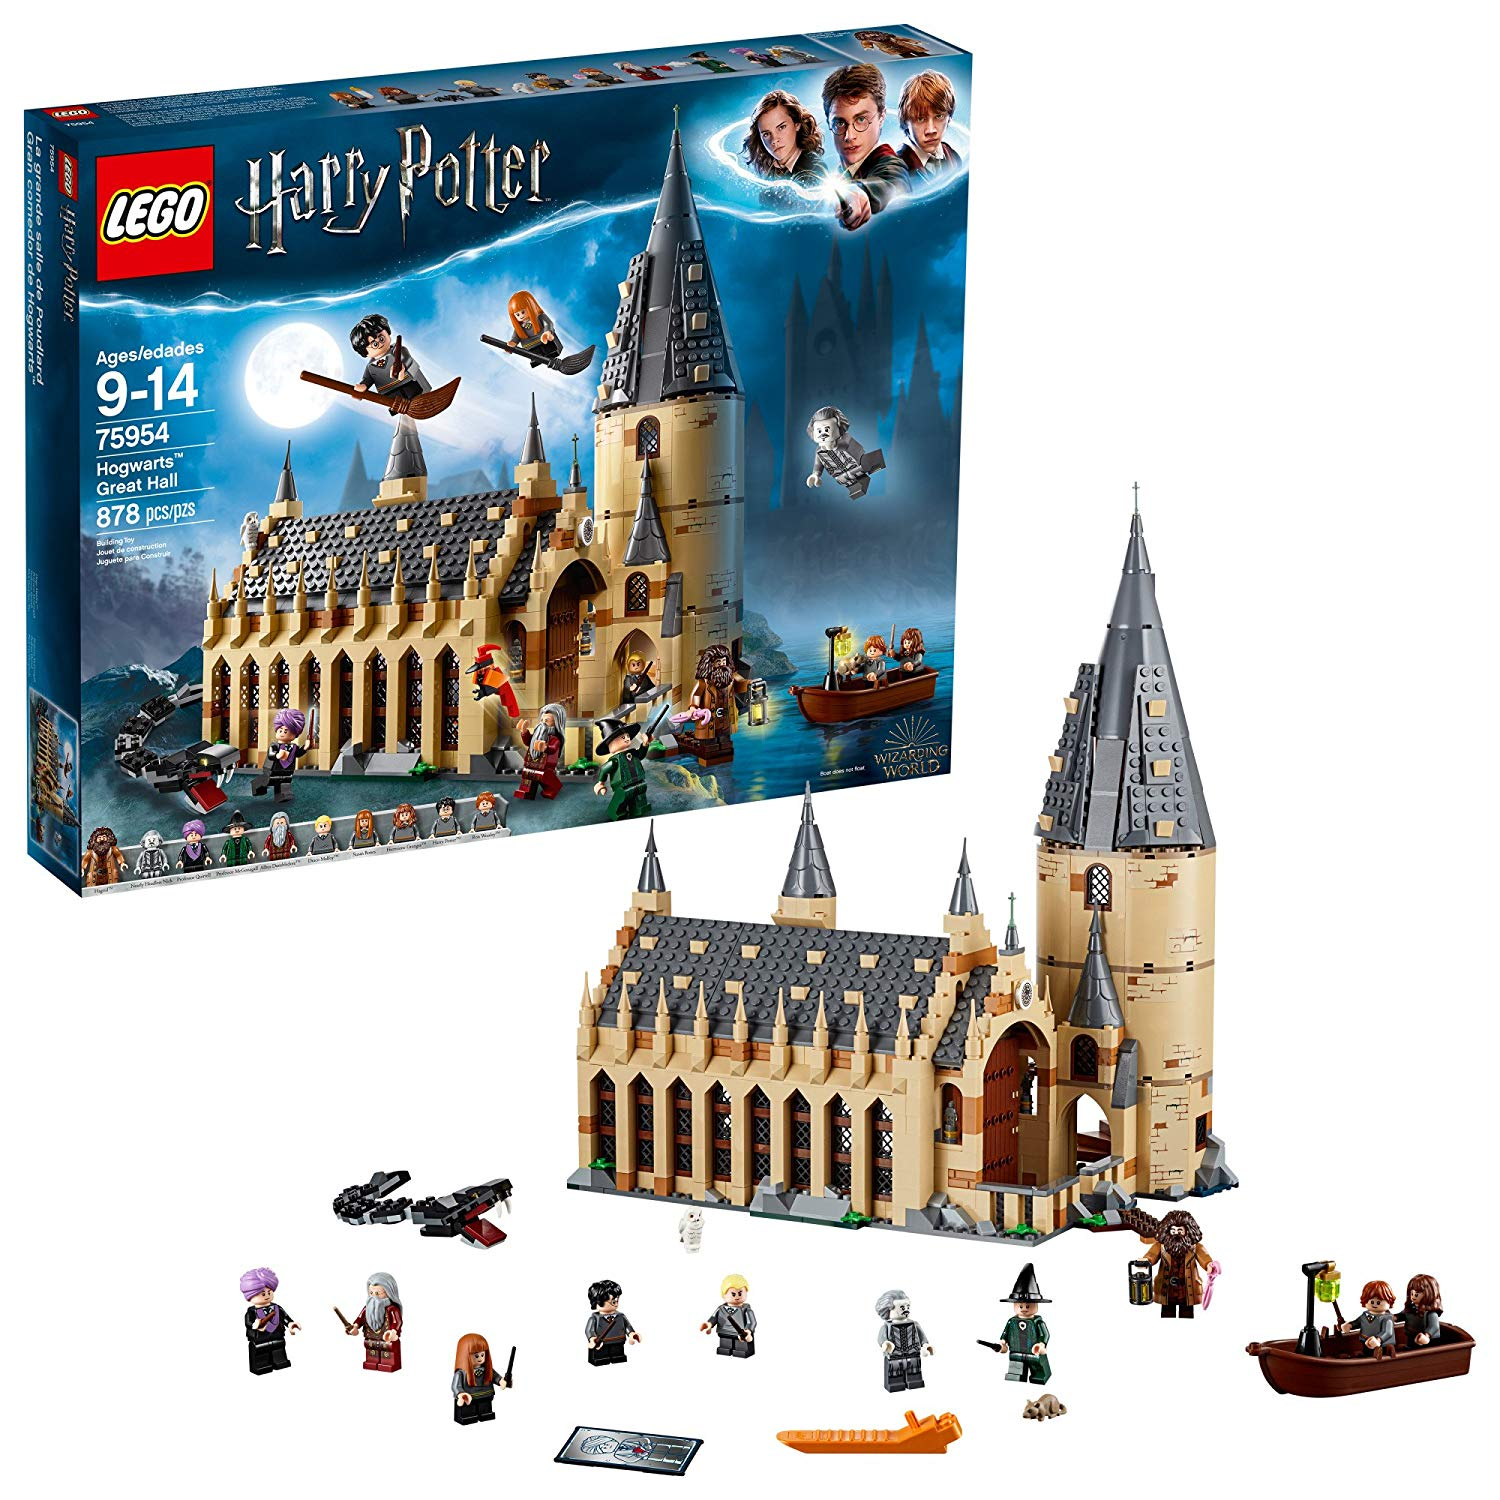 LEGO Harry Potter Hogwarts Great Hall Building